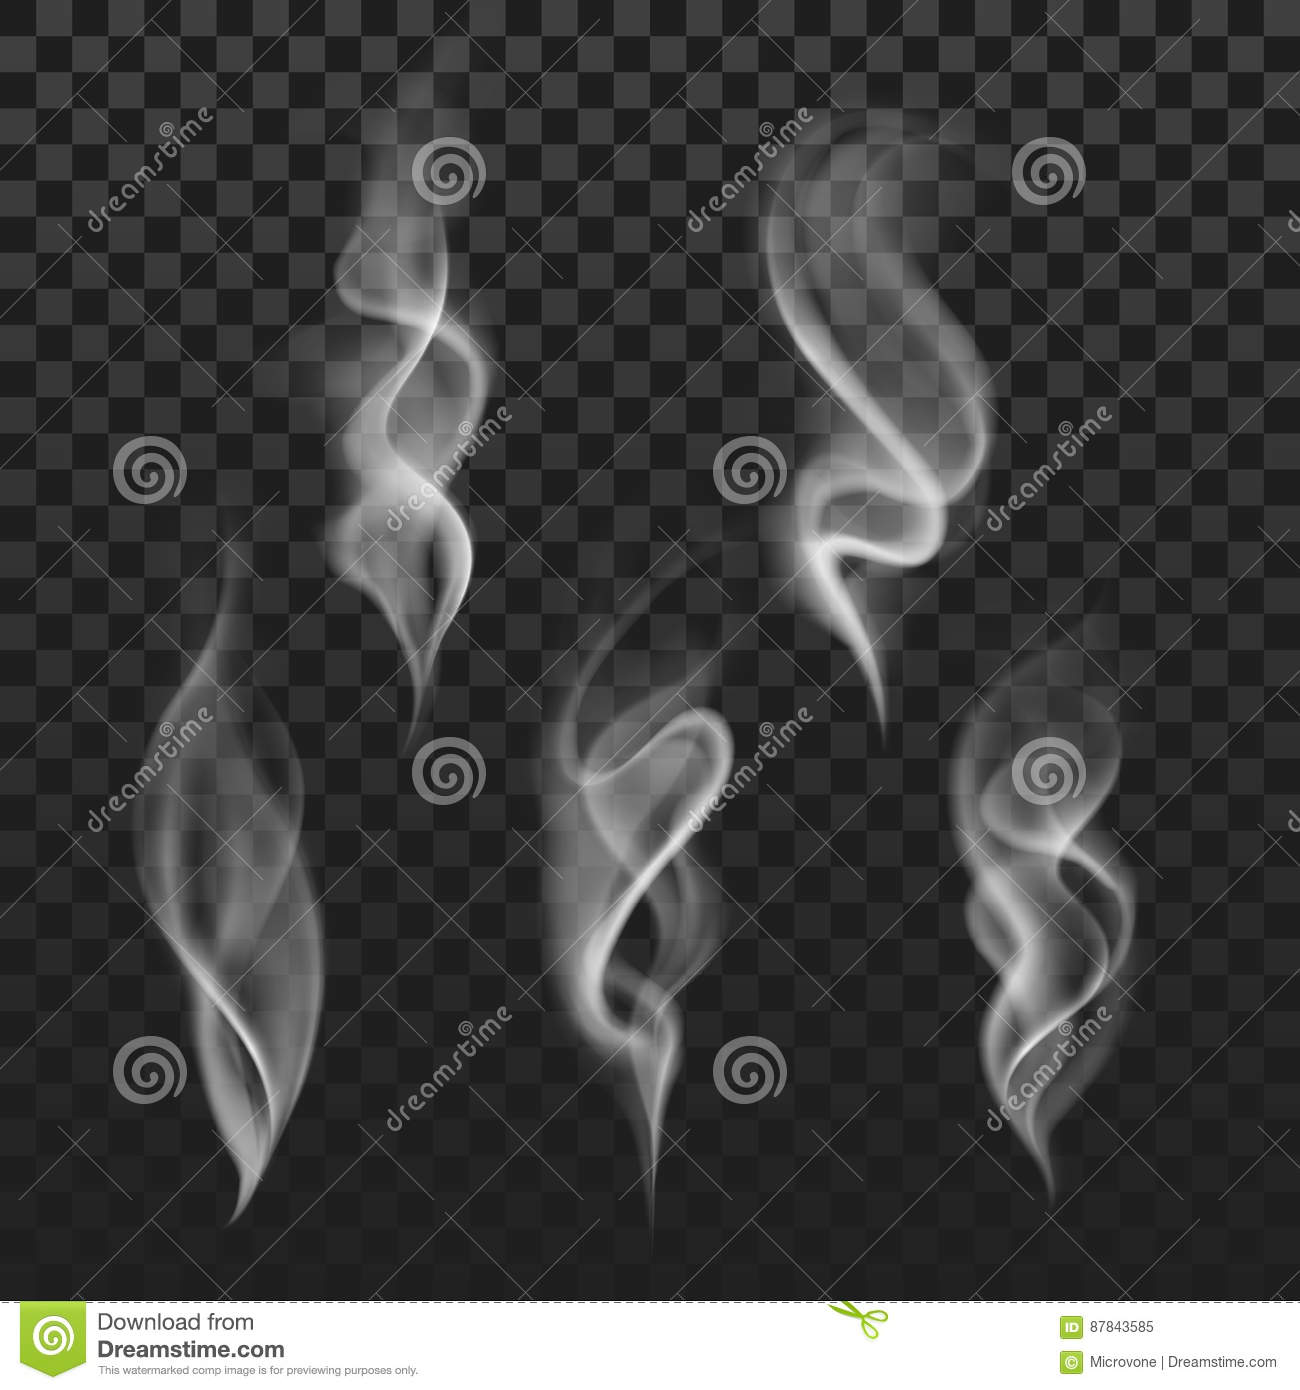 Abstract transparent smoke hot white steam isolated on checkered background